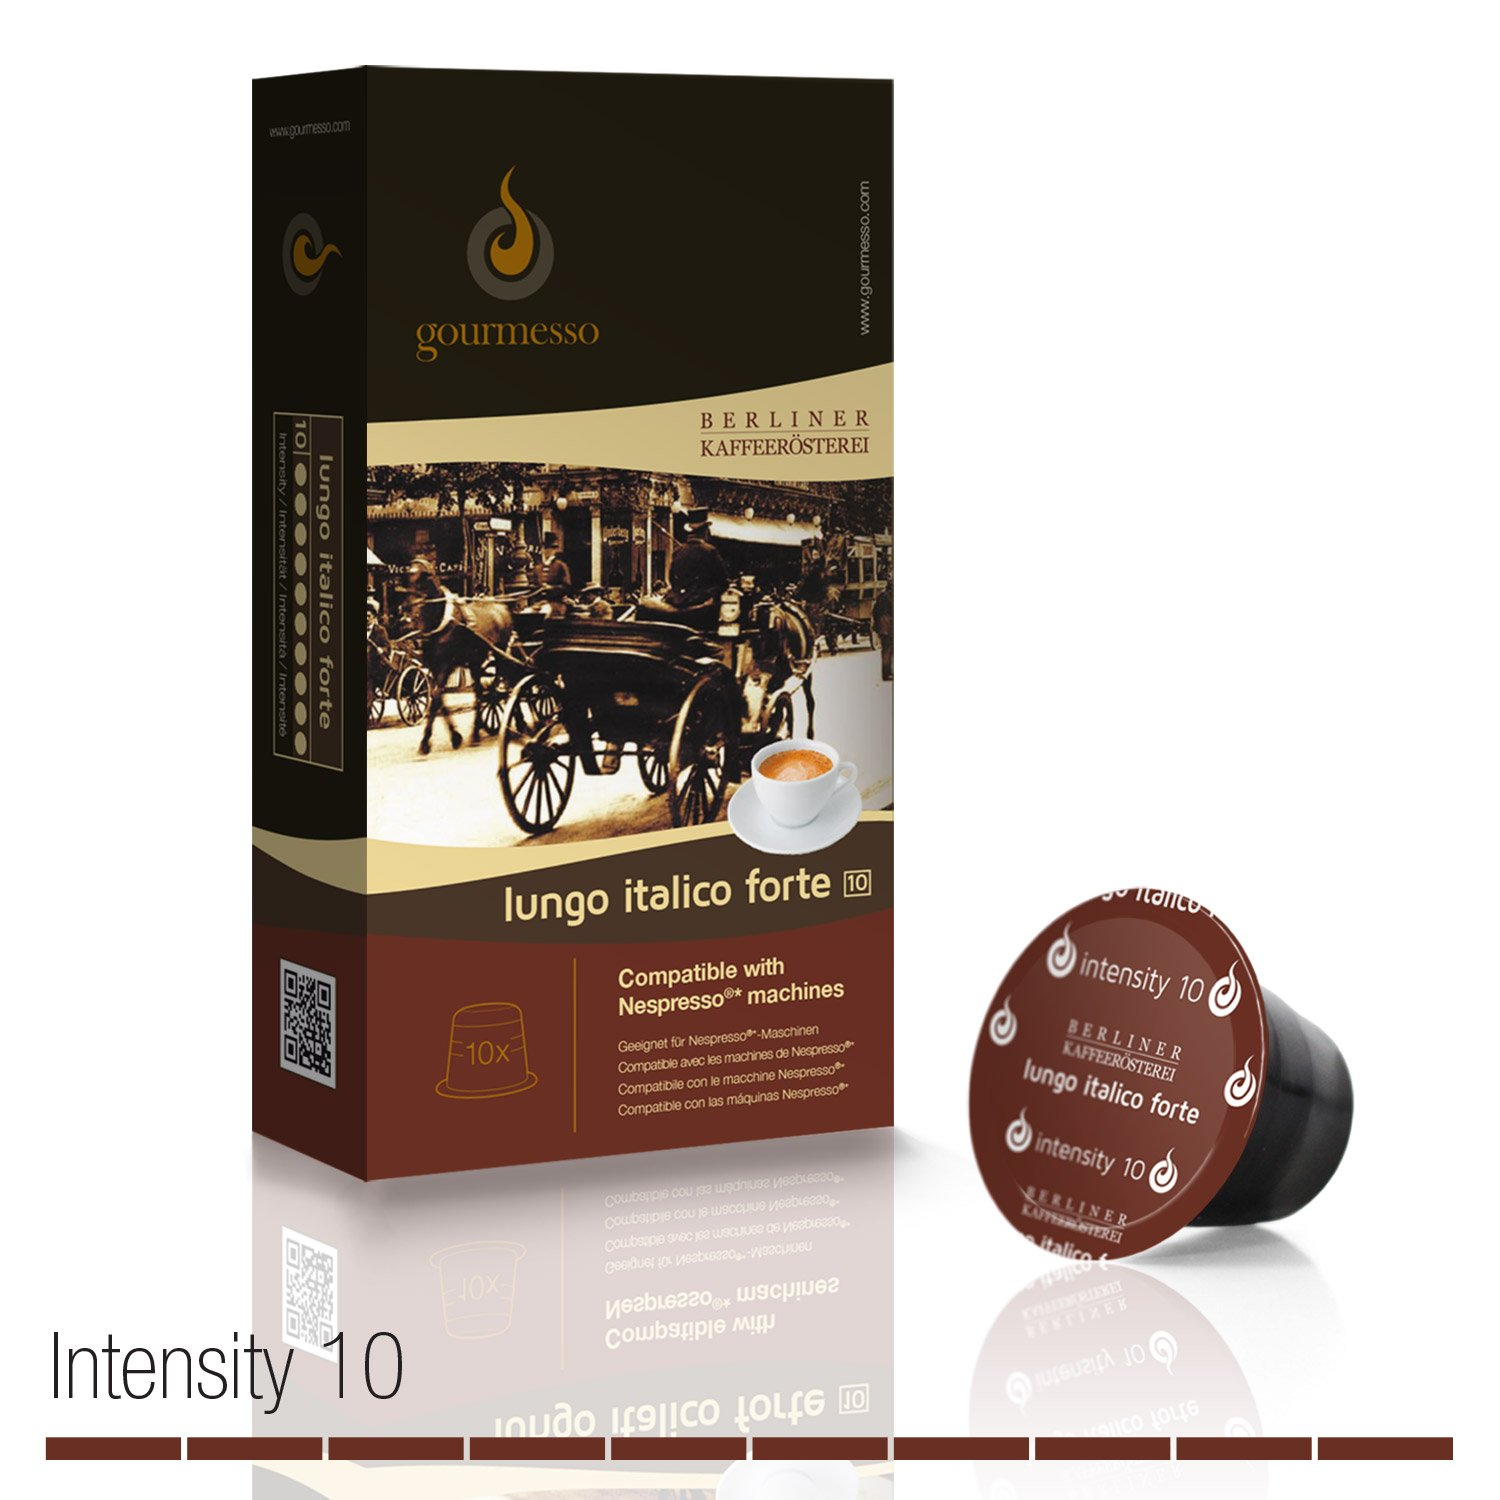 Amazon.com : Gourmesso Lungo Italico Forte by Berlin Coffee Roasters - 50 Nespresso Compatible Coffee Capsules | High Intensity : Grocery & Gourmet Food